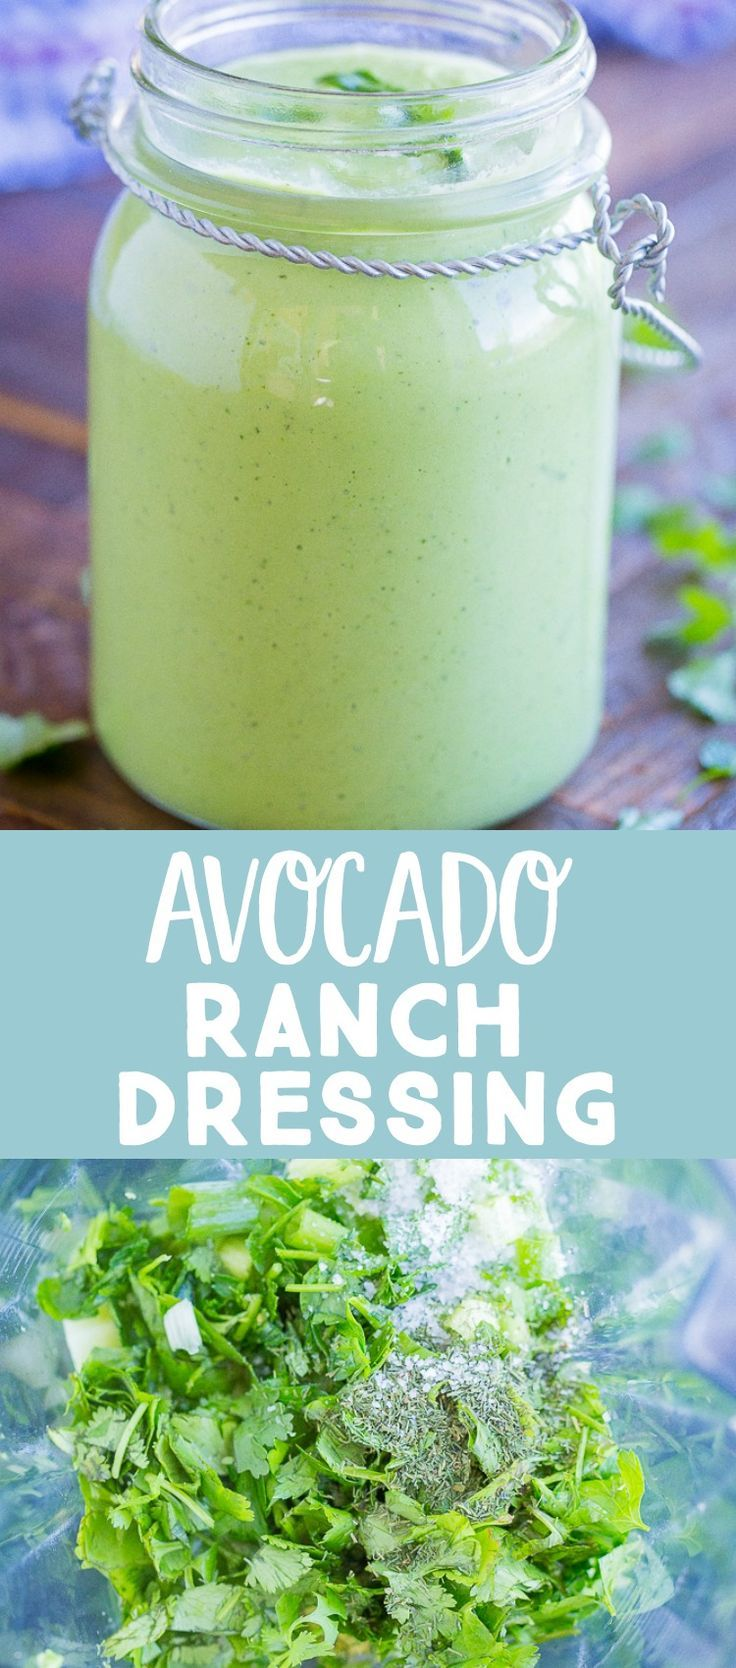 Avocado Ranch Dressing - She Likes Food